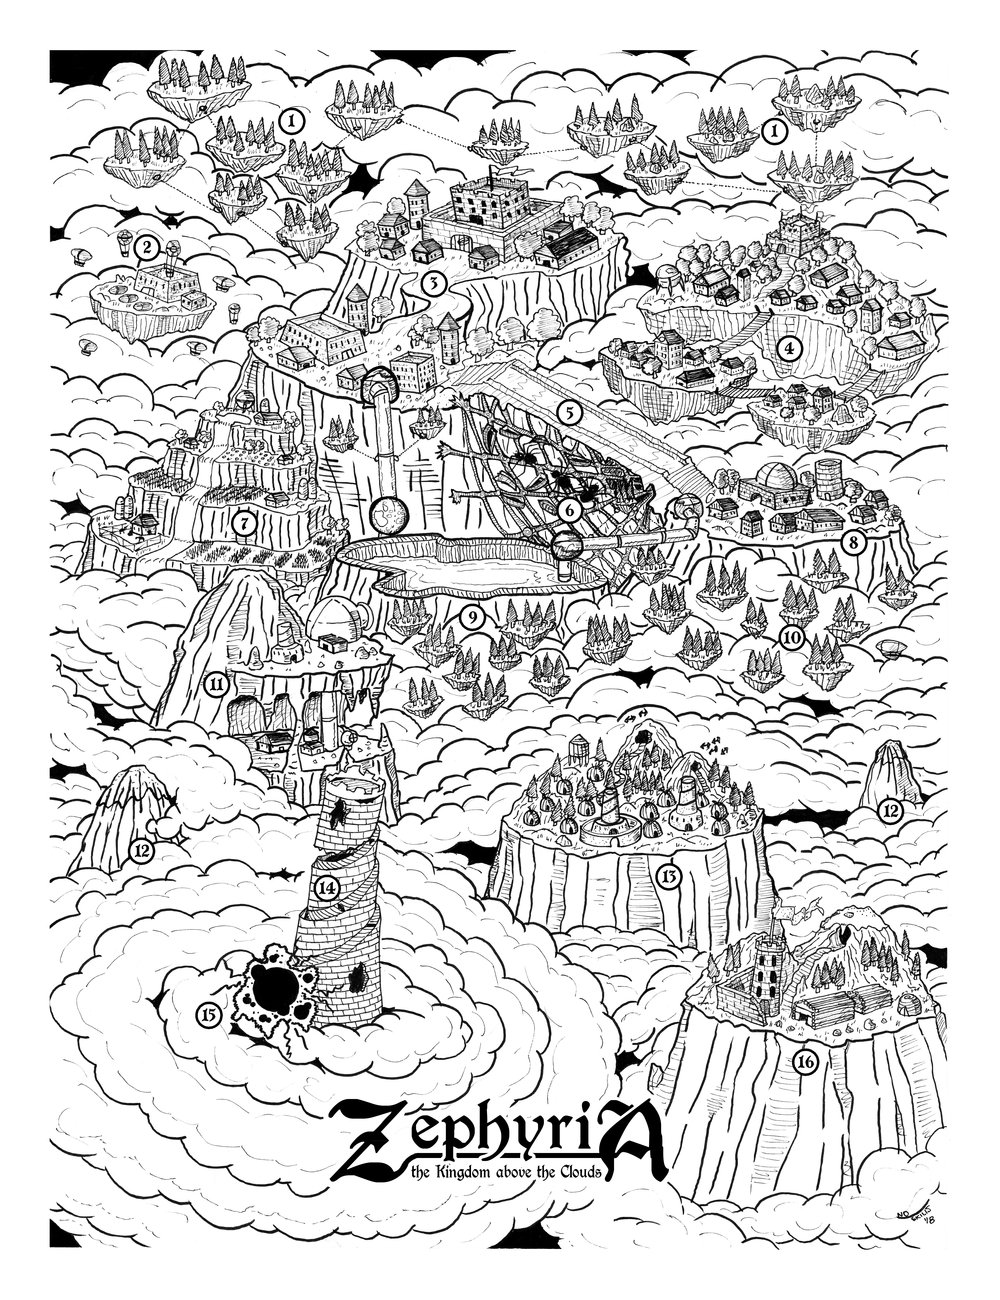 ...Like Zephyria: The Kingdom Above the Clouds - Where cities are strung between mountain-tops and airships ply the sky-sea. But what are they running from, on the decimated earth they left behind?